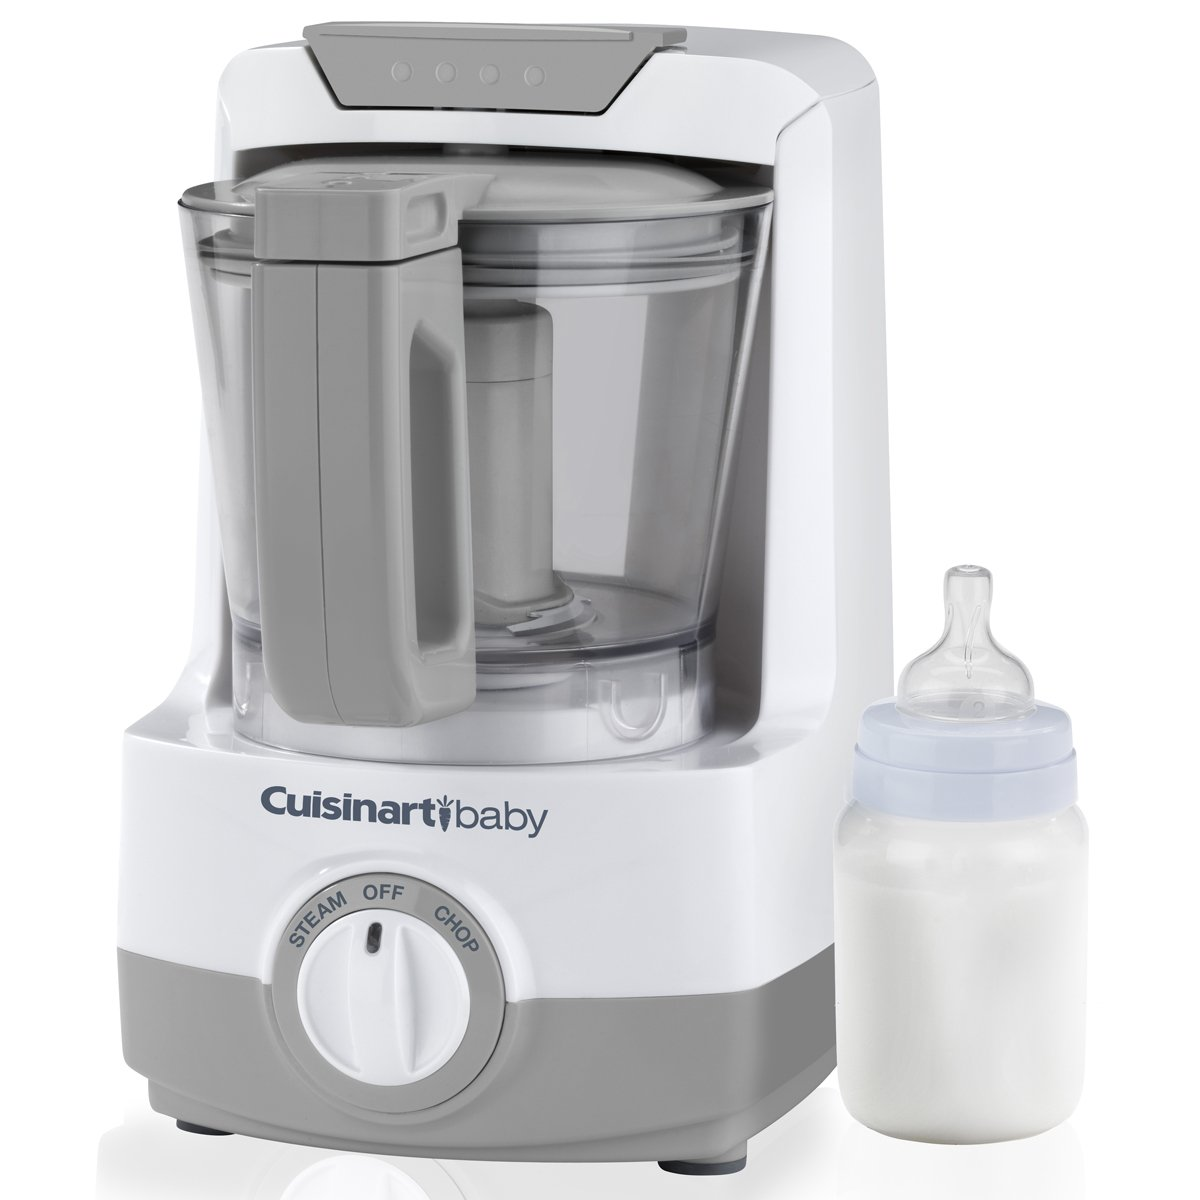 Cuisinart Baby Food Blender